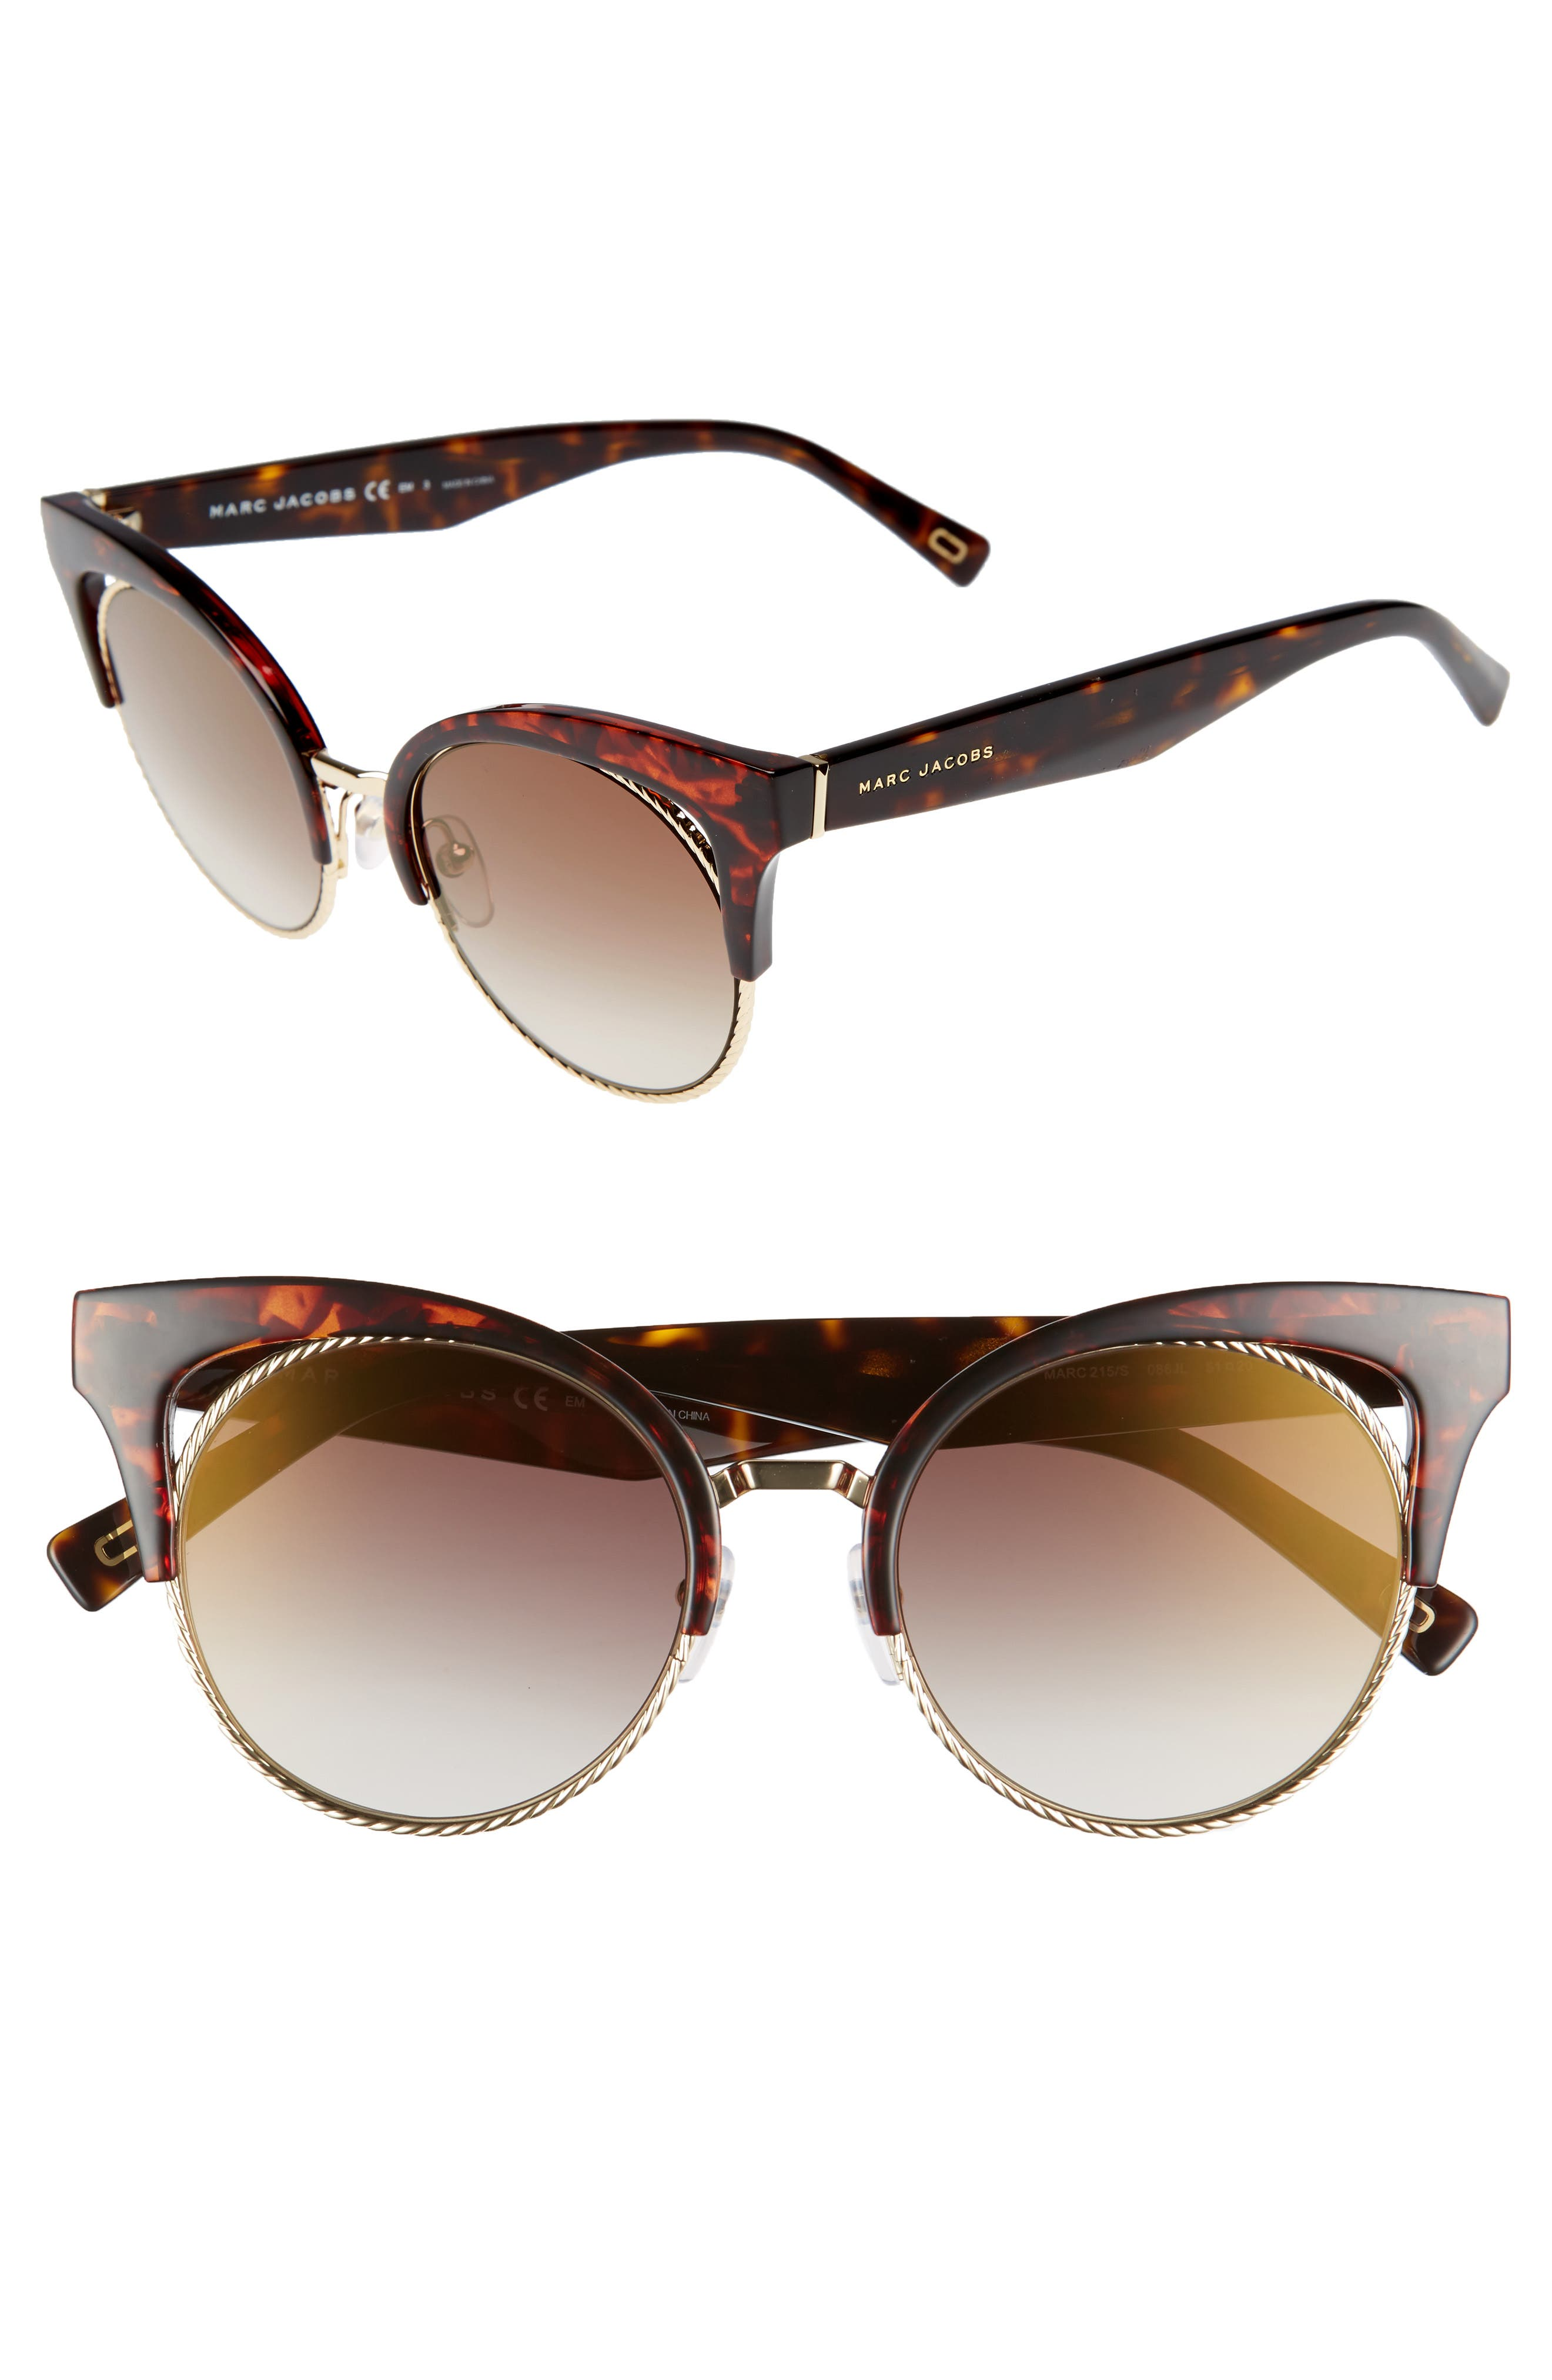 Alternate Image 1 Selected - MARC JACOBS 51mm Gradient Lens Cat Eye Sunglasses